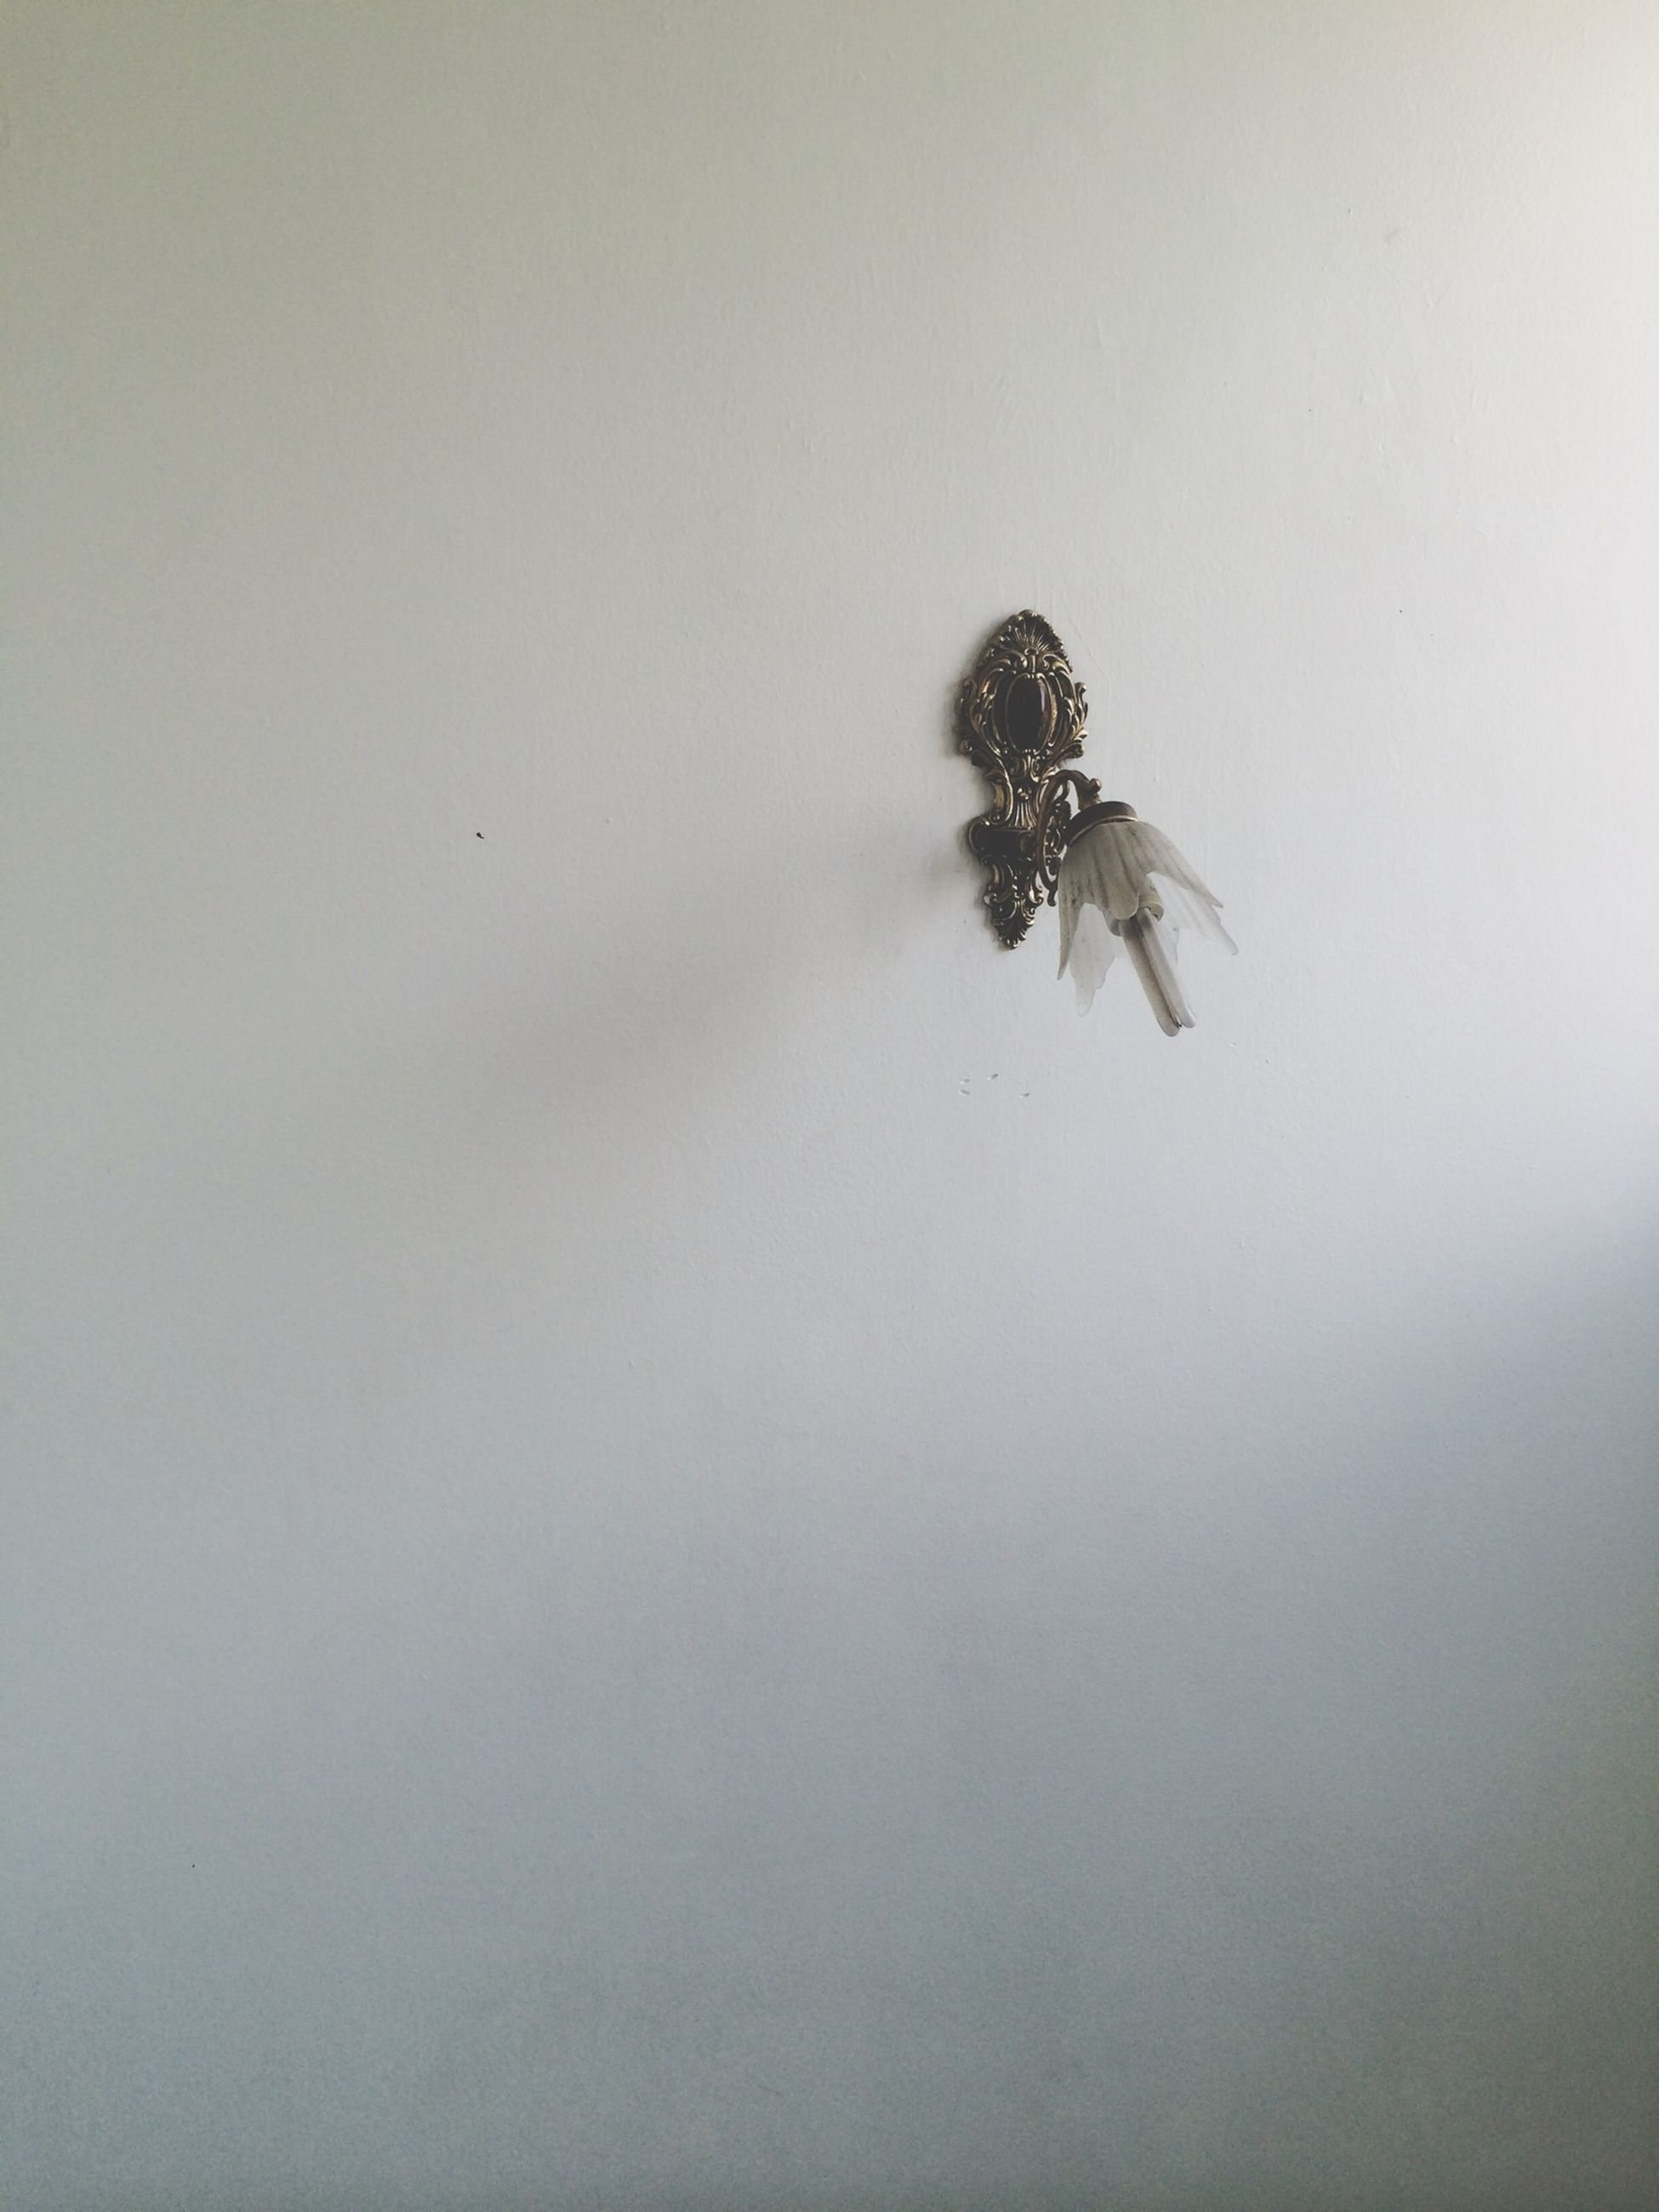 insect, indoors, copy space, wall - building feature, animal themes, one animal, animals in the wild, white background, wildlife, spider, studio shot, close-up, no people, wall, white color, nature, day, built structure, high angle view